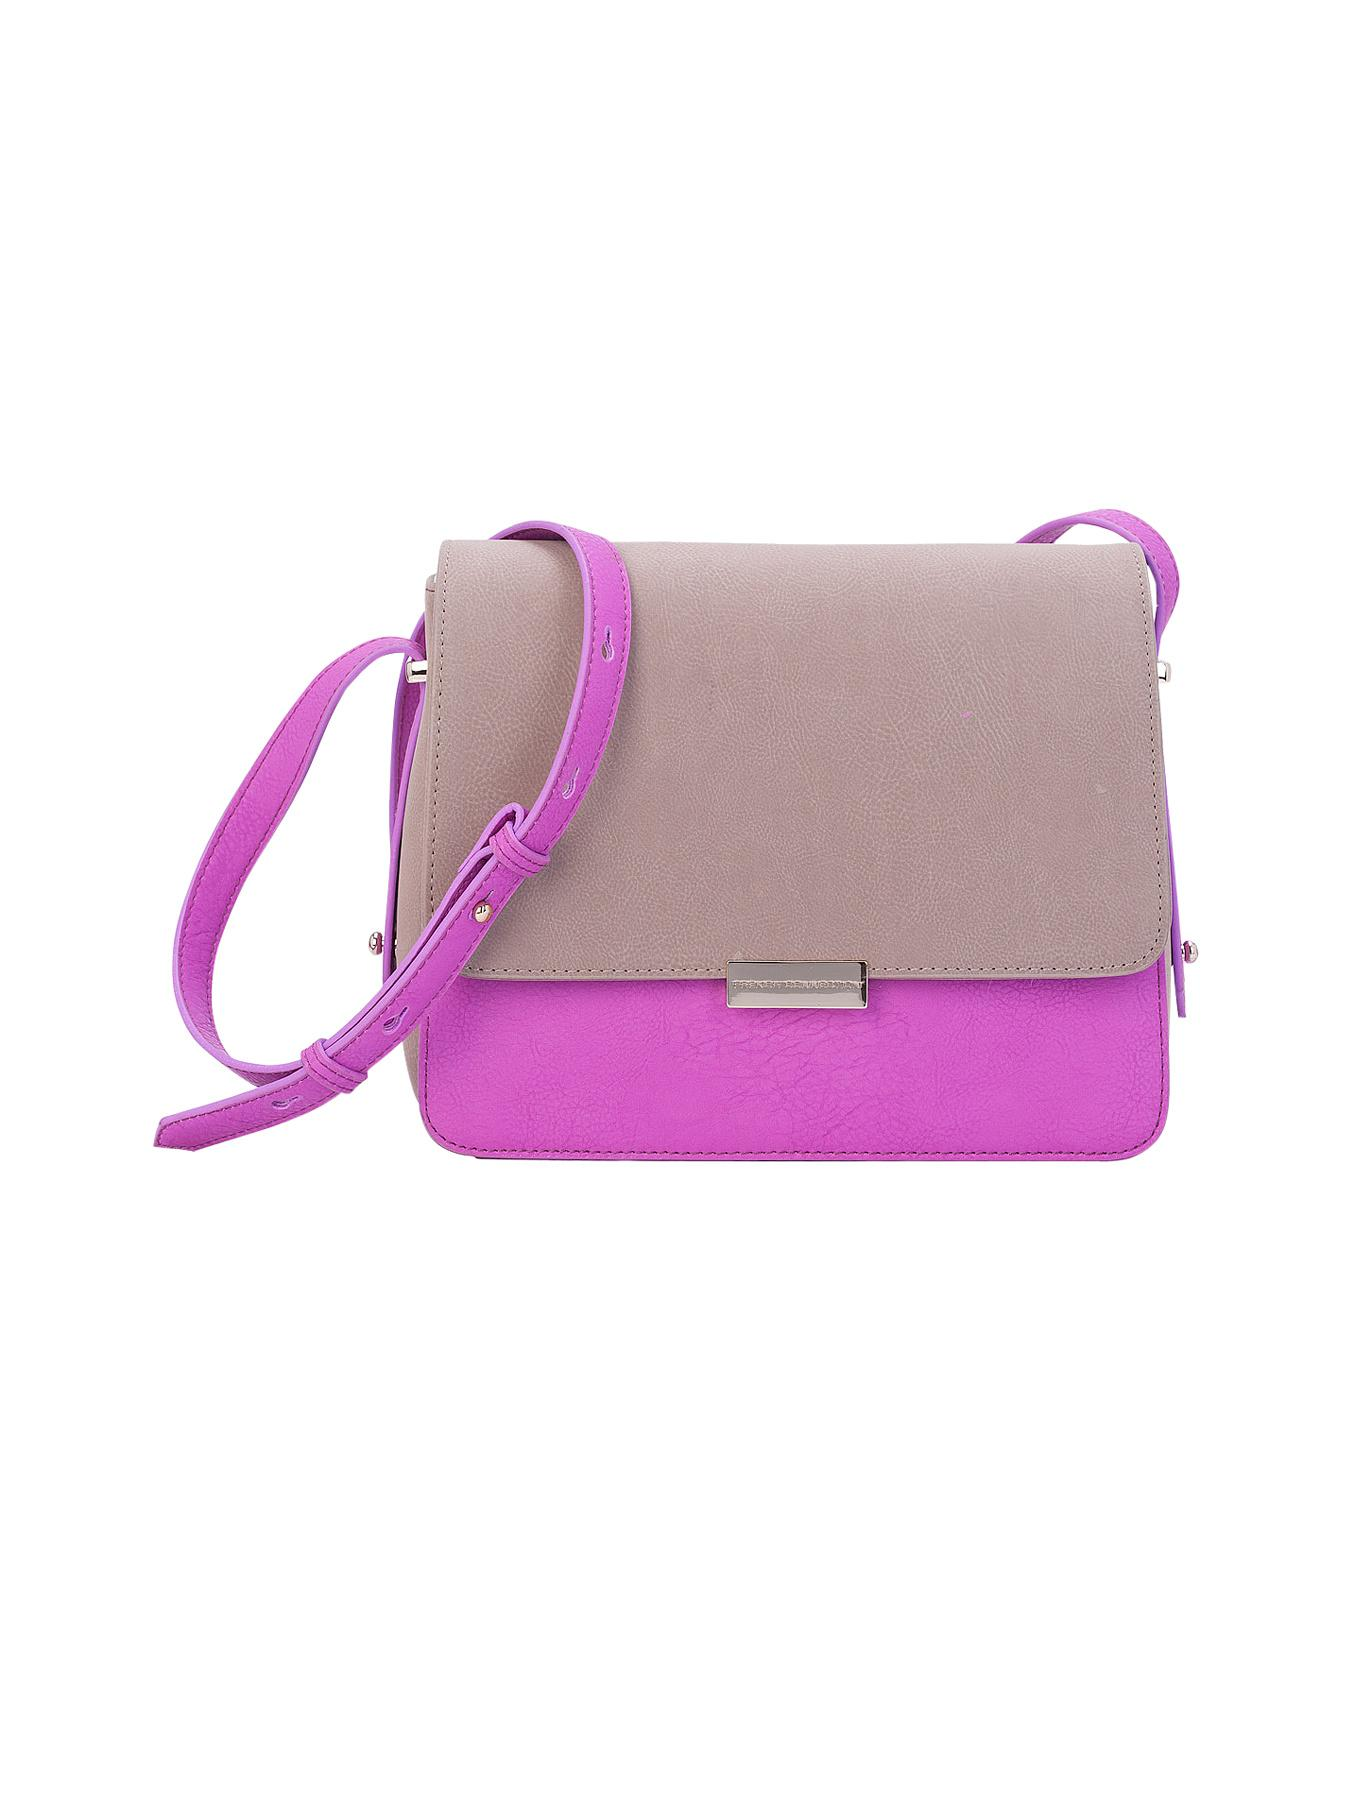 French Connection Crossbody Bag - Pink, Pink